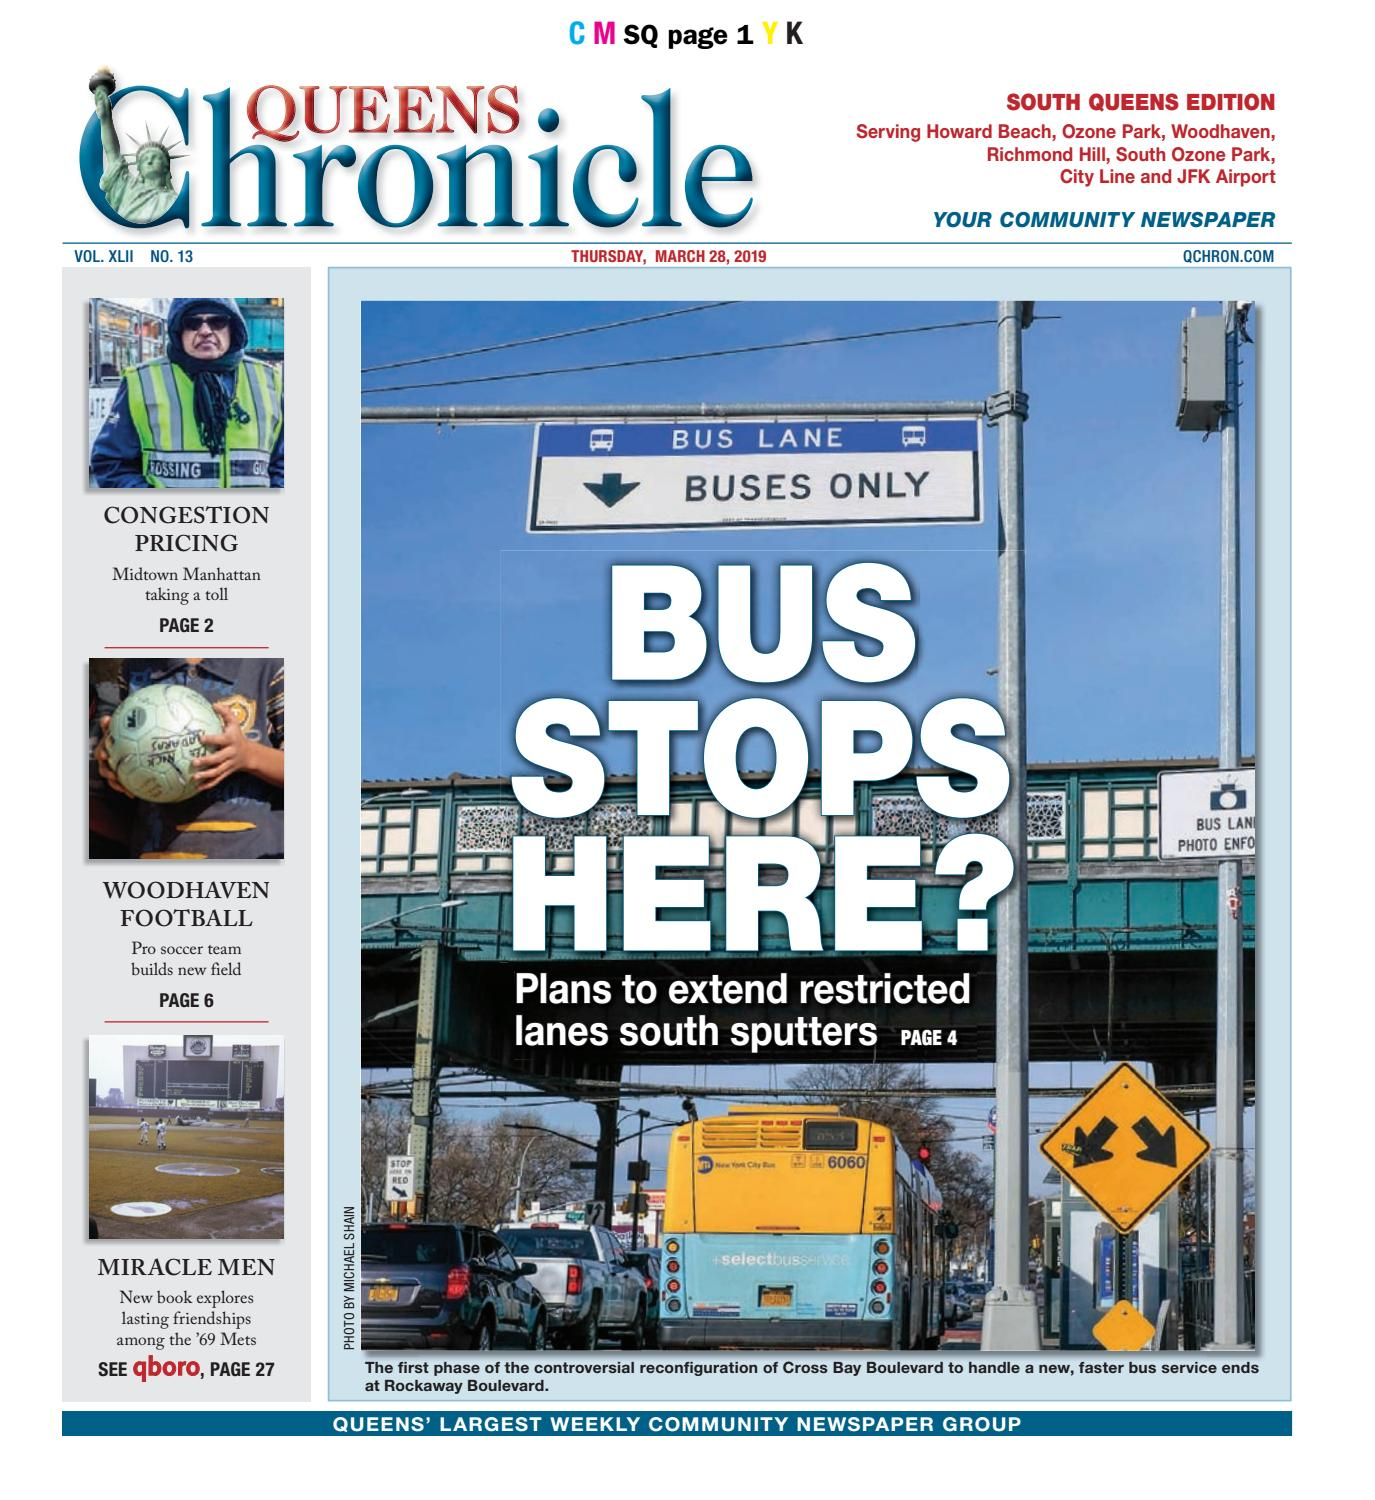 Queens Chronicle South Edition 03-28-19 by Queens Chronicle